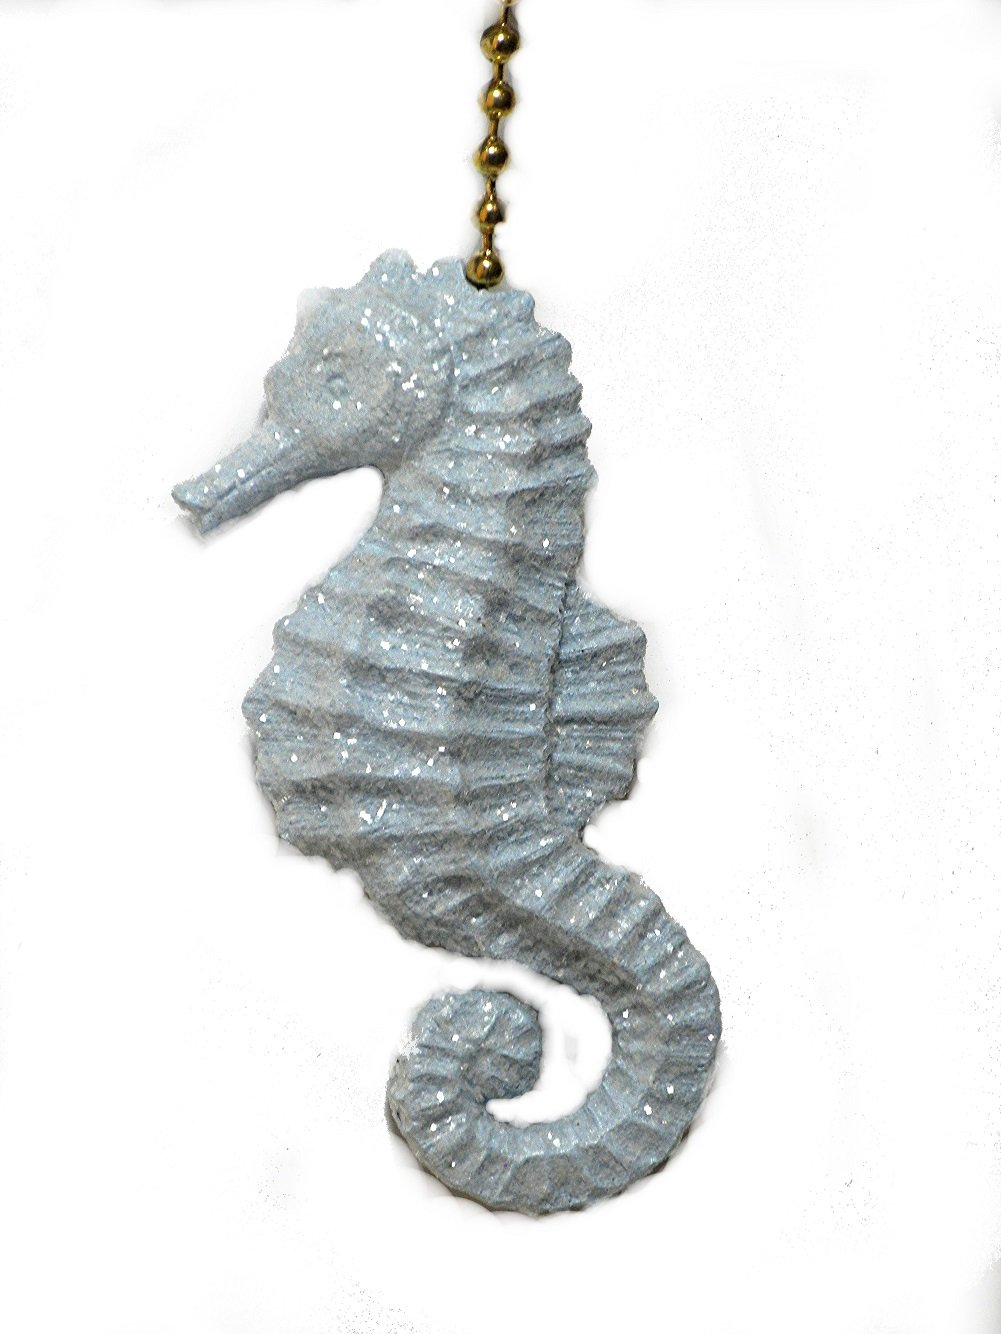 Sparkling light blue Seahorse ceiling Fan Pull chain ornament by Clementine Designs